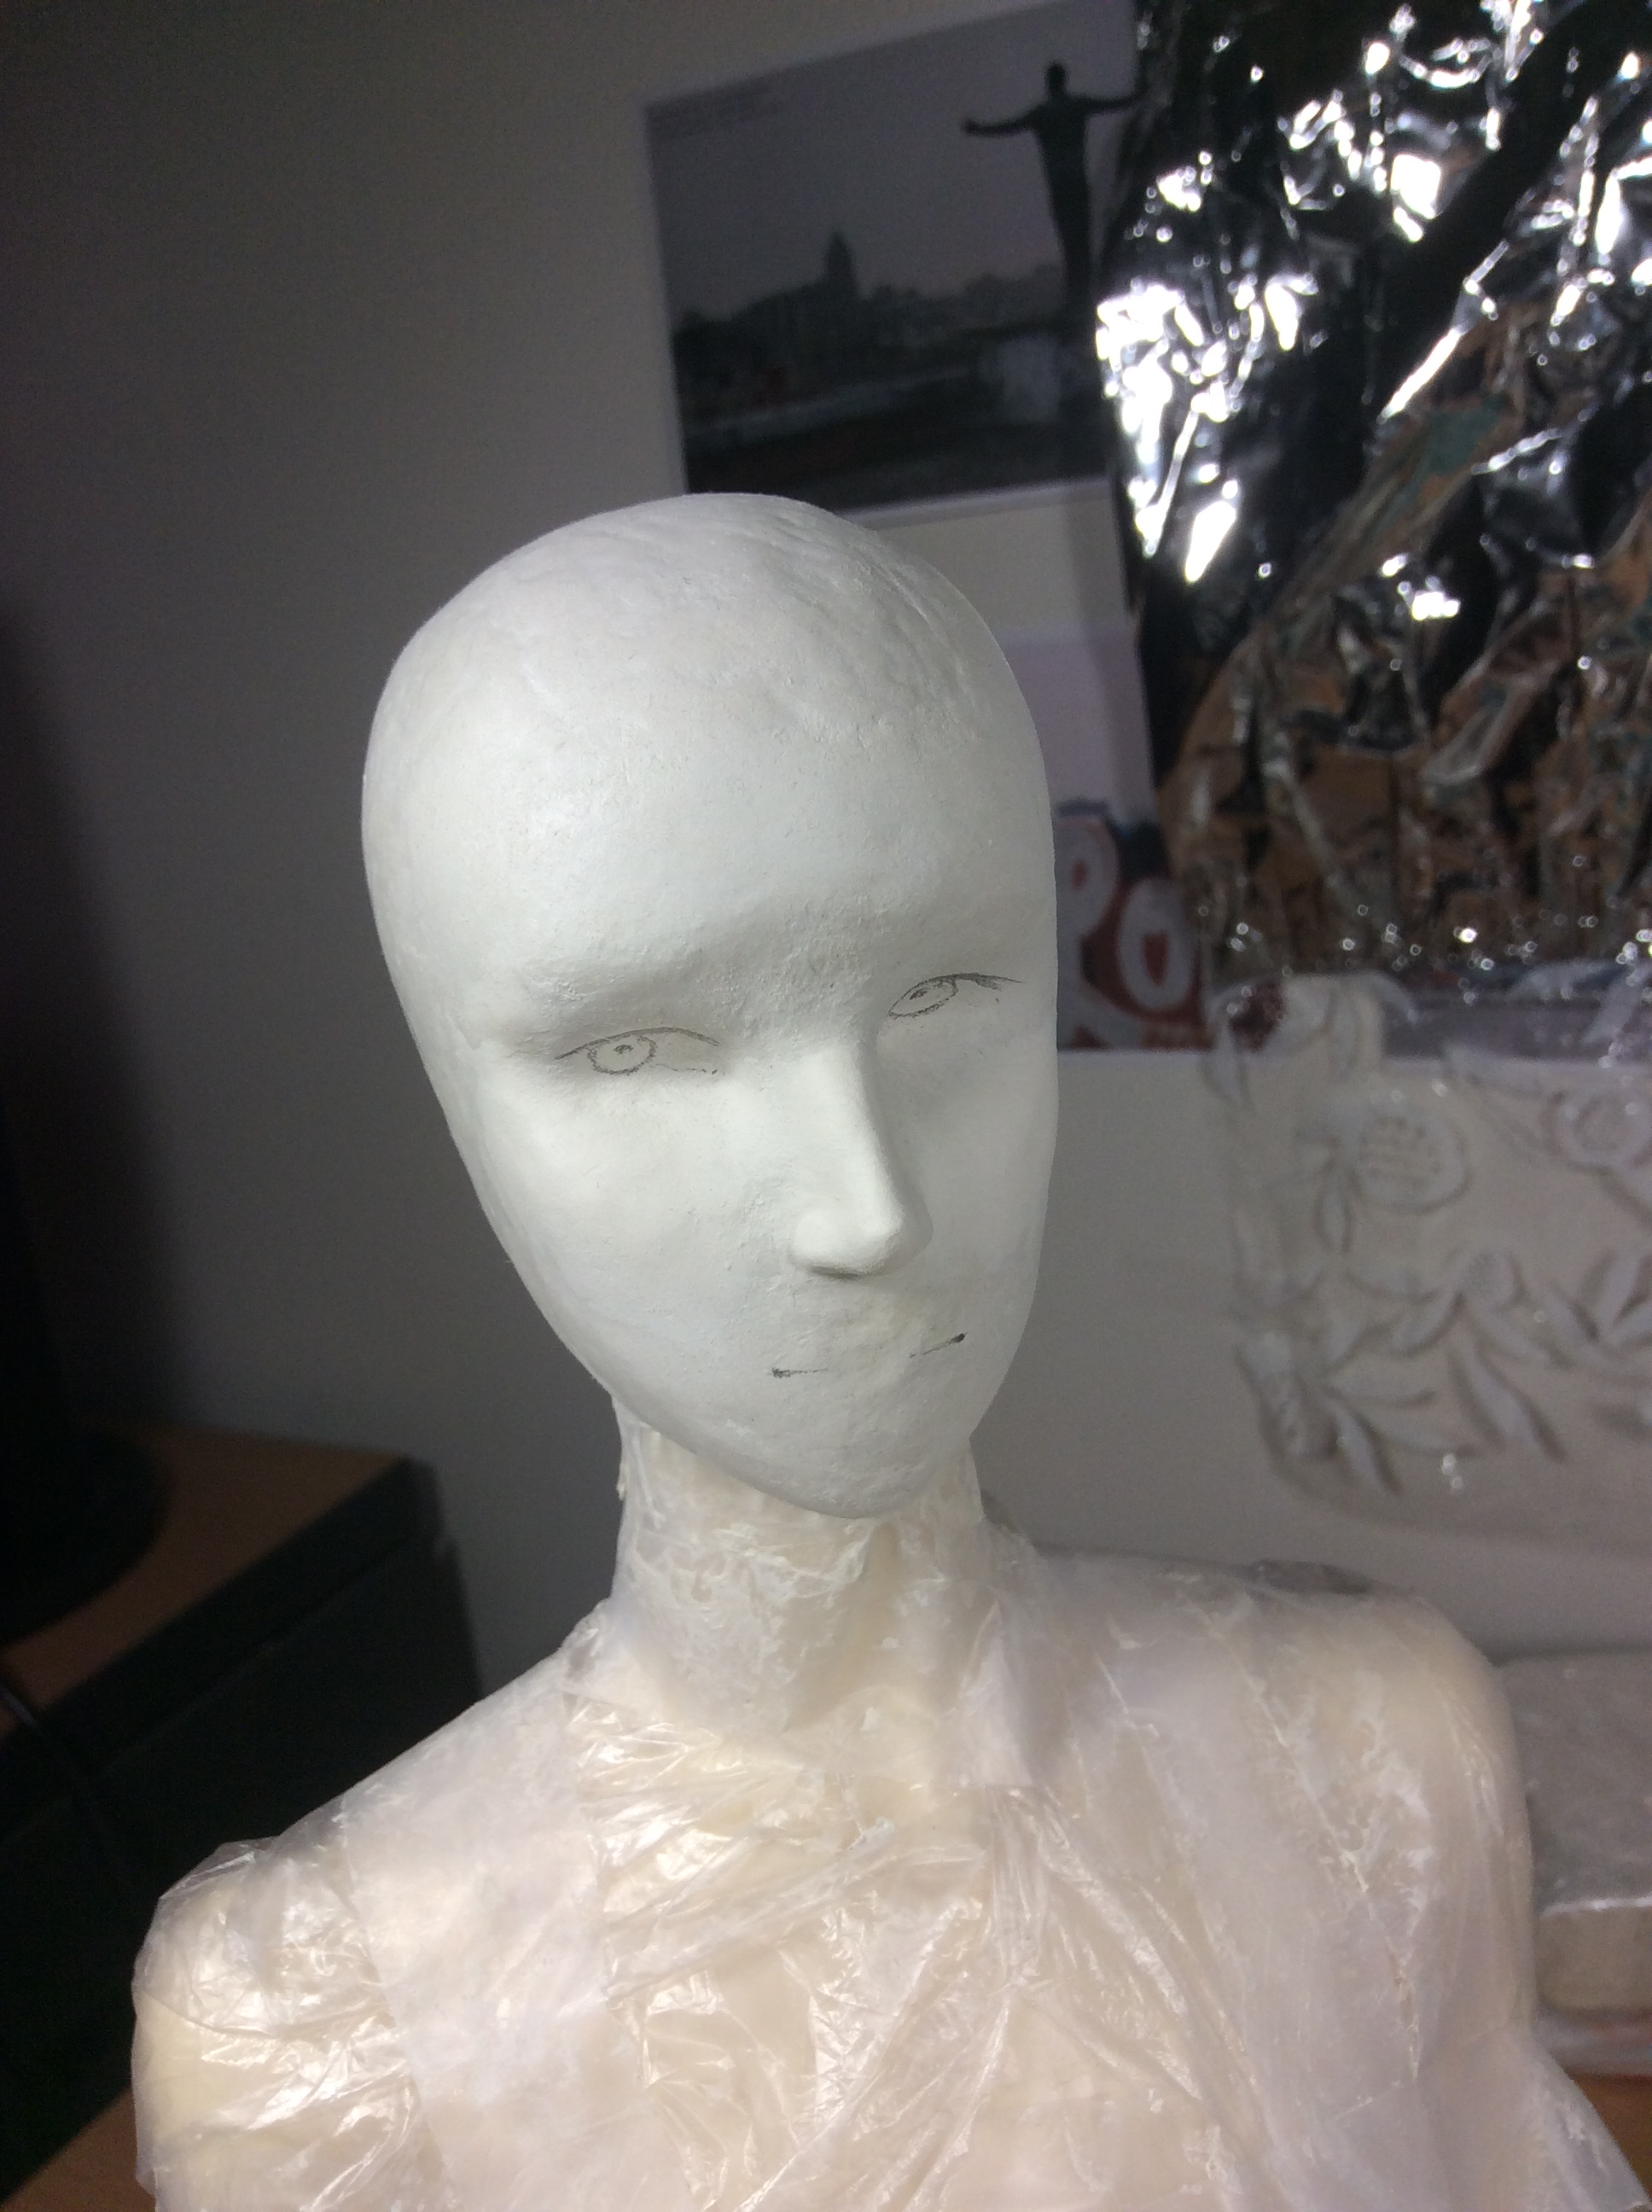 jemse---my-first-doll-head-making-progress-diary-part-2_31602474583_o